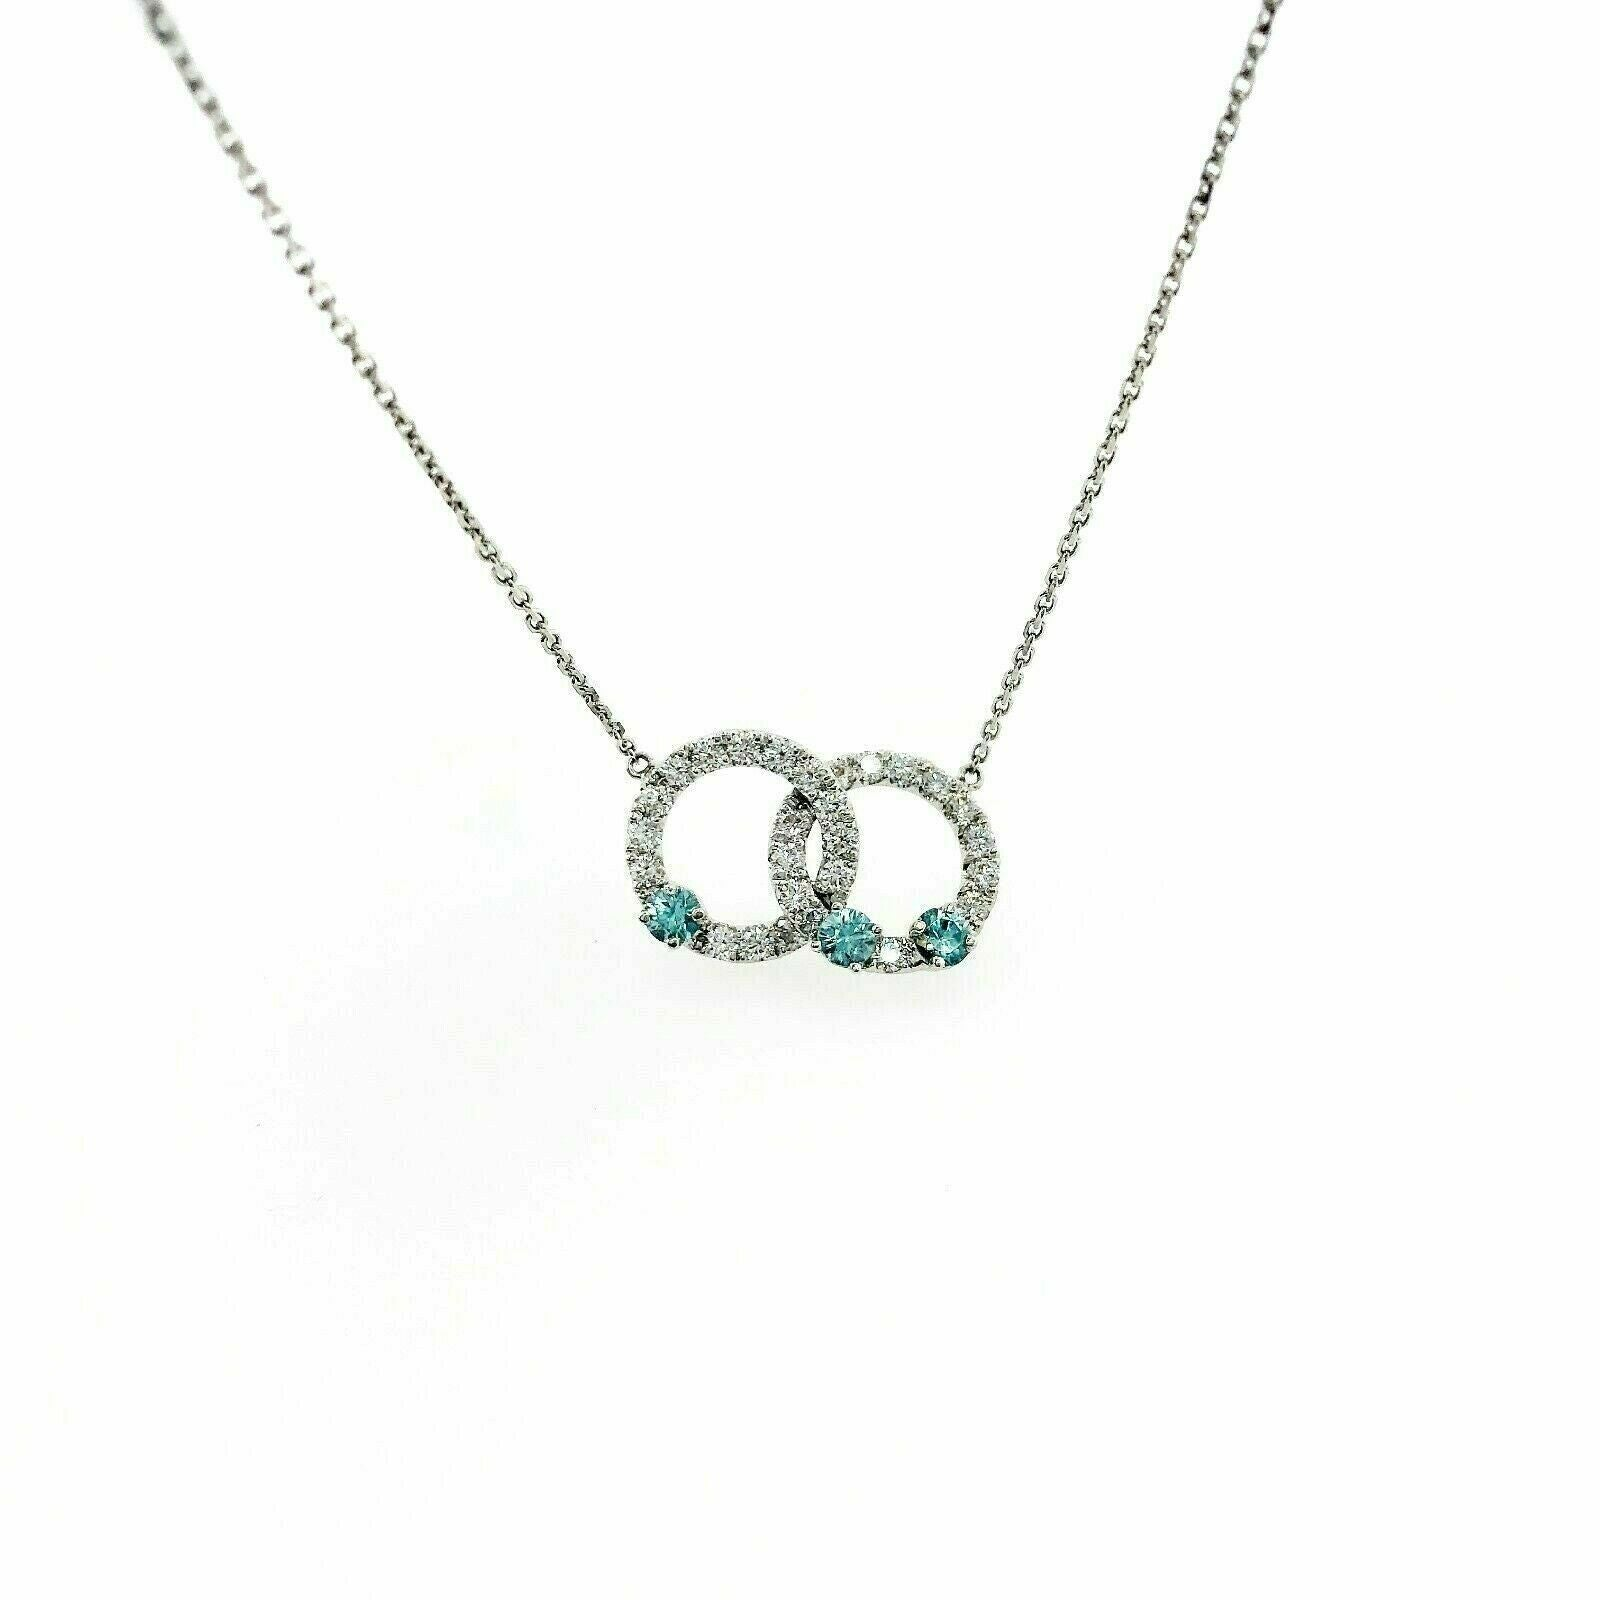 2.15 Carats t.w. Diamond and Blue Topaz 14K Gold Intertwined Circles Necklace